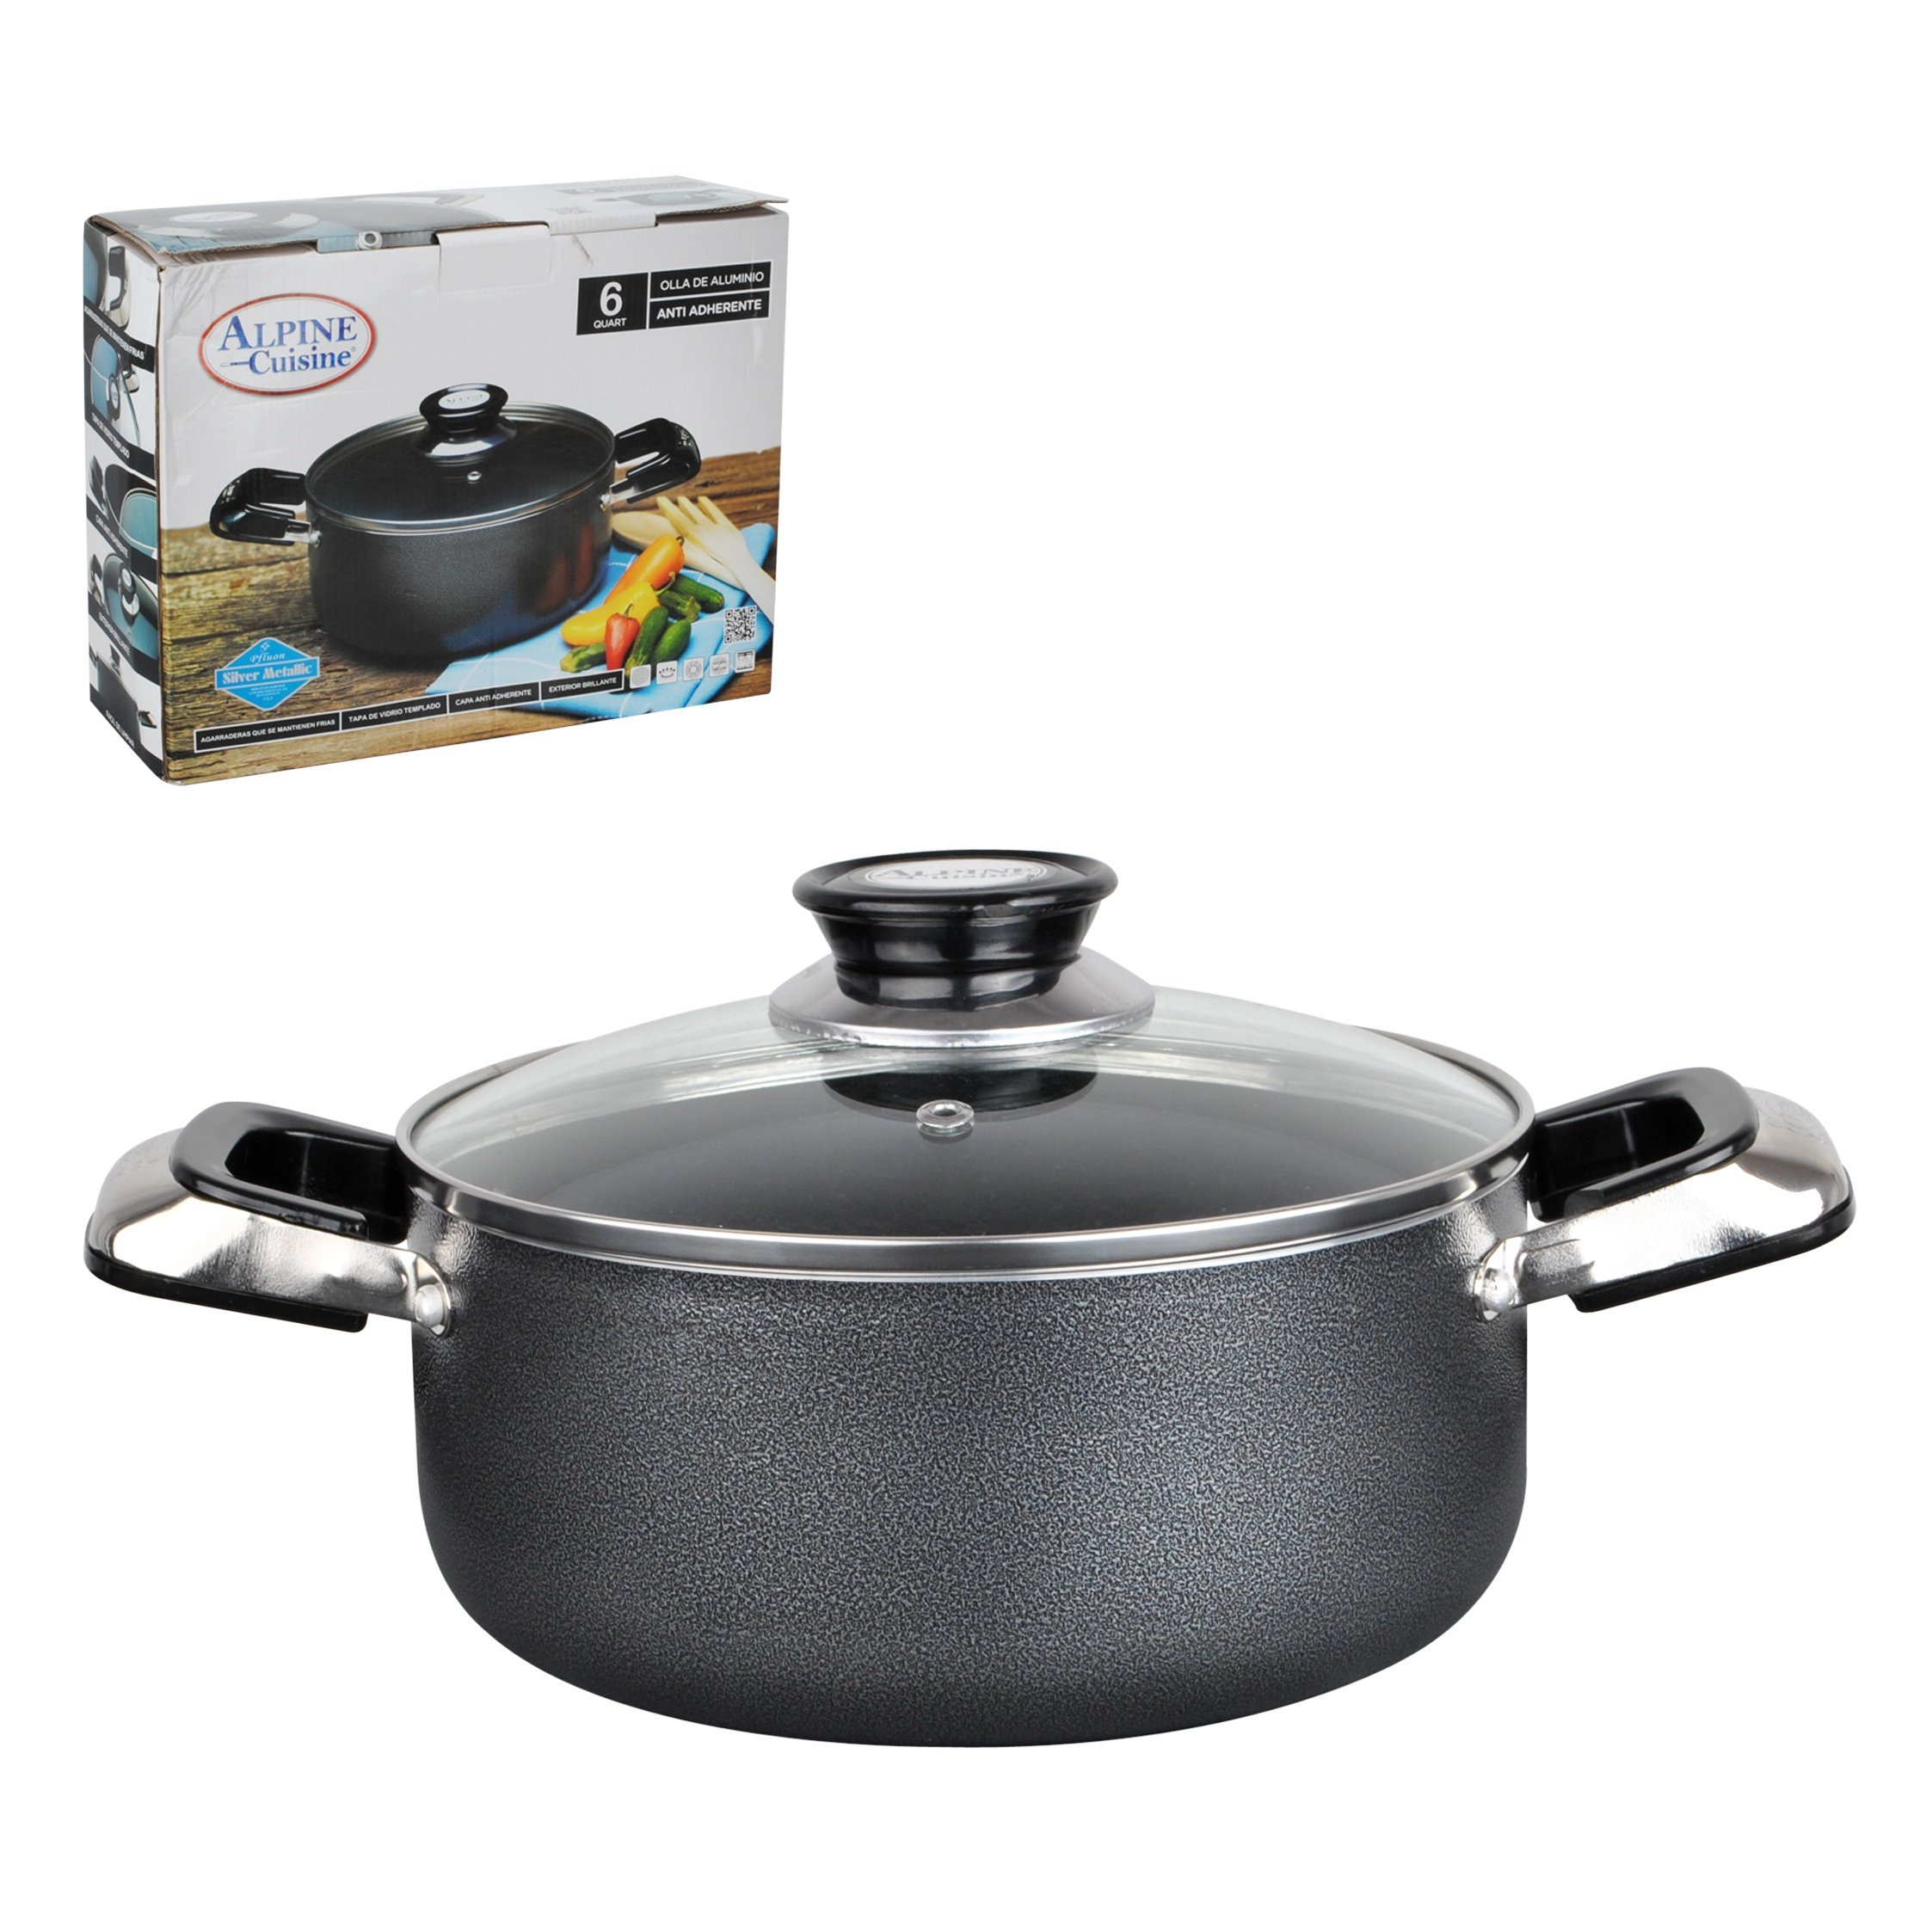 Aramco Alpine Gourmet Aluminum Non-Stick Coating Dutch Oven, 4 quart, Silver/Gray